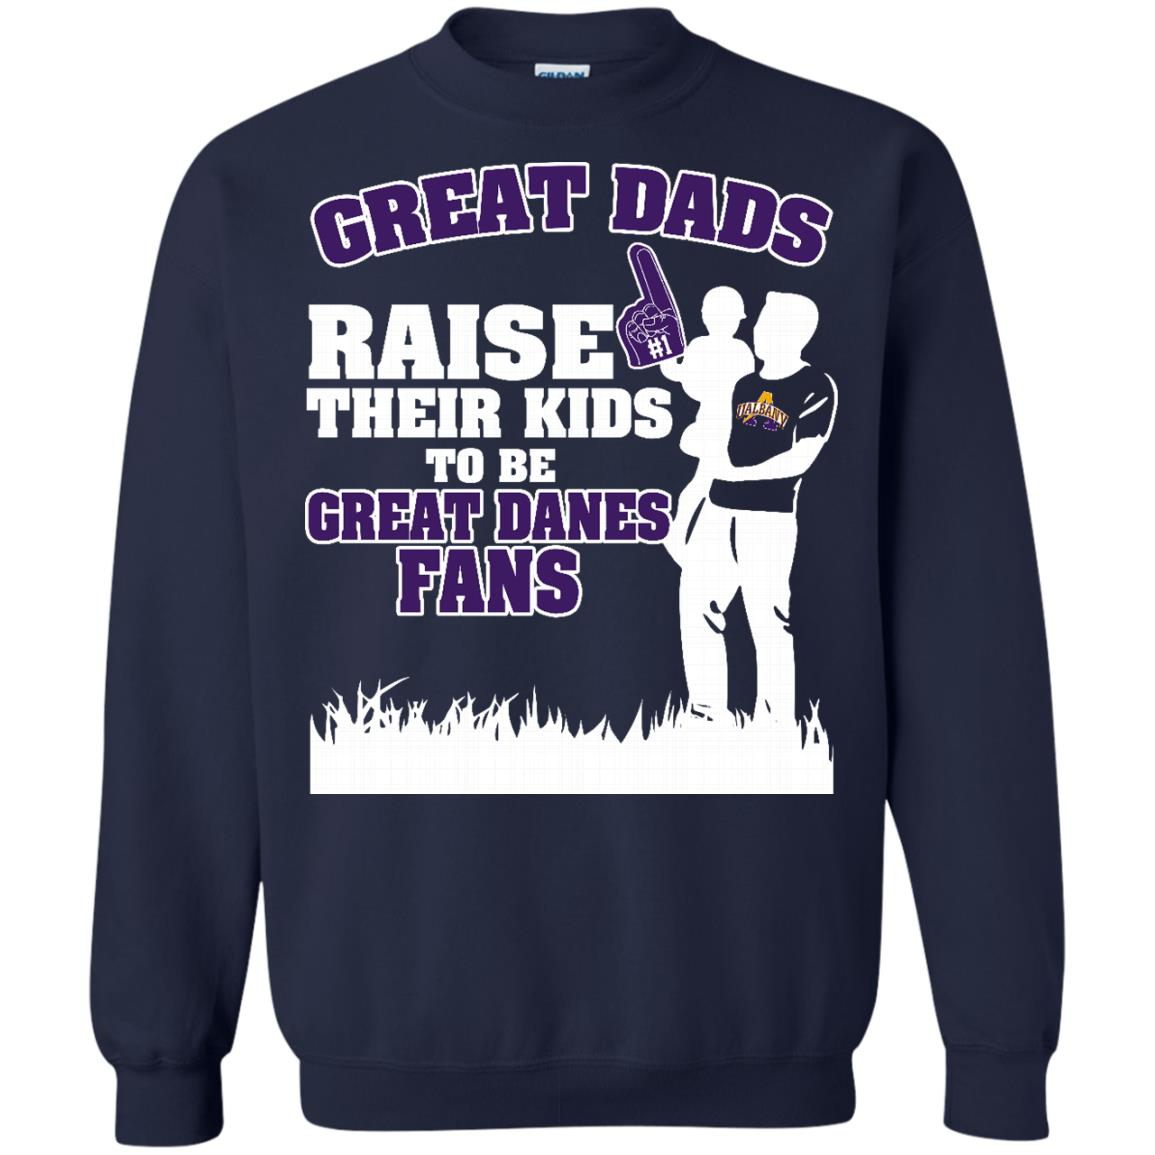 Albany Great Danes Father T shirts Great Dads Raise Their Kids To Be Great Danes Fans Hoodies Sweatshirts